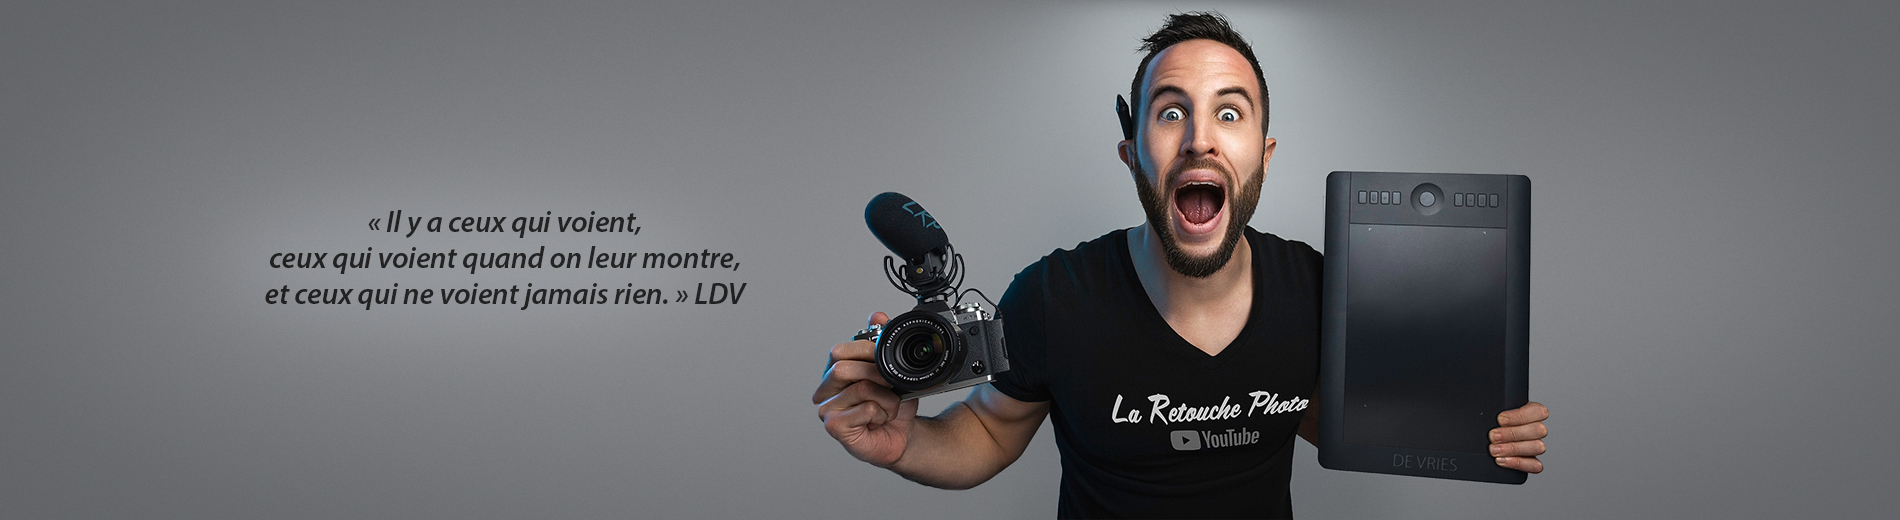 La Retouche photo : ensemble clic, par clic